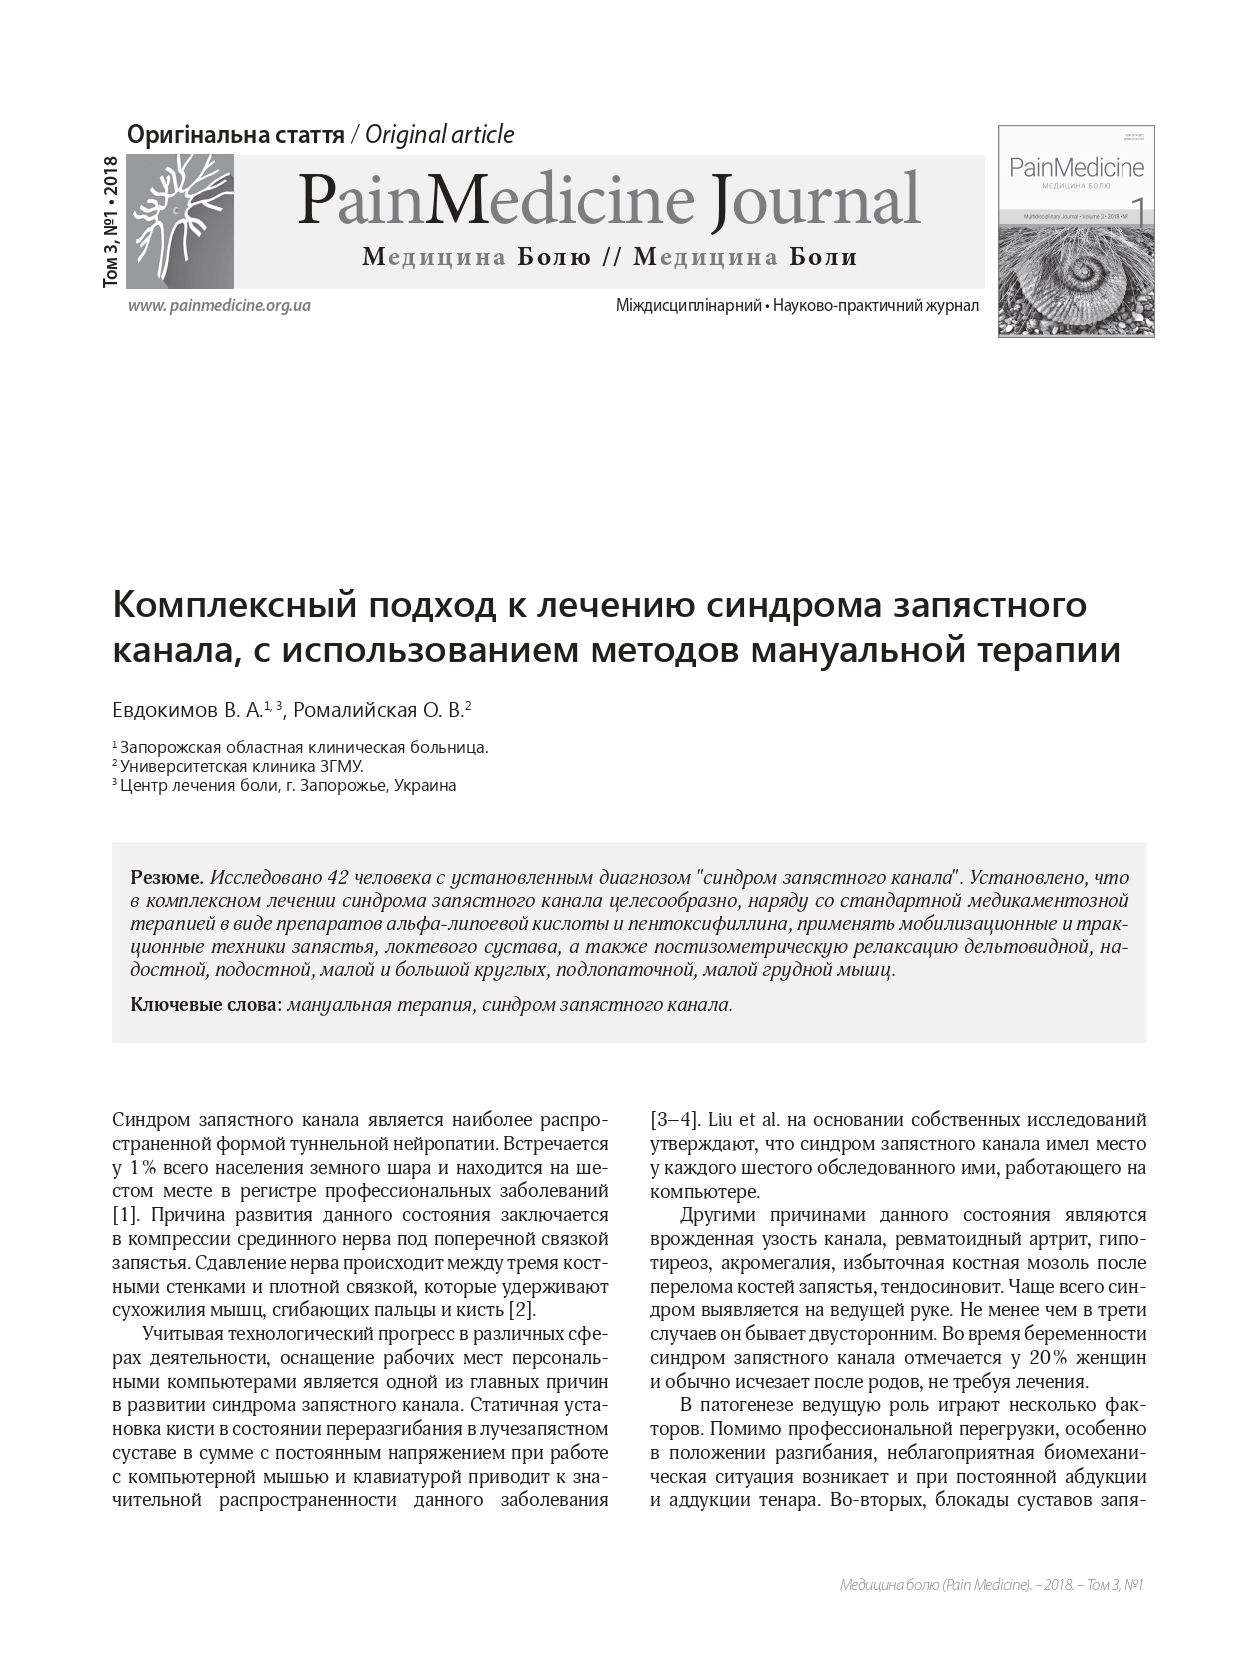 Complex approach to treatment of the carpal tunnel syndrome, with the use of methods of manual therapy